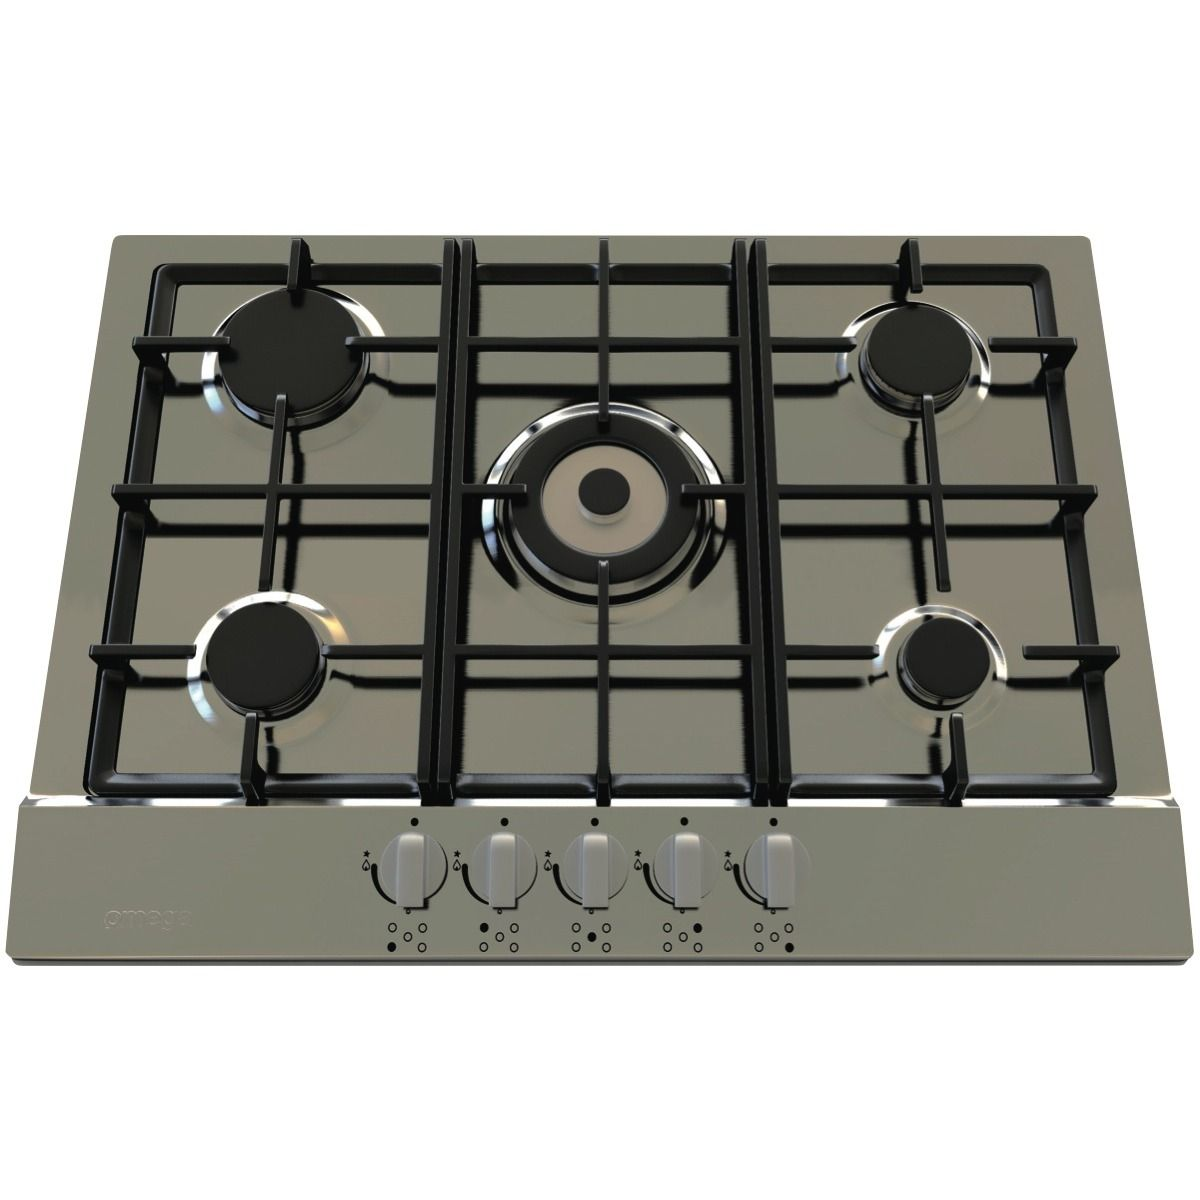 Omega OG72XA Omega 70cm Gas Cooktop - upgrade to this one? $545 ...